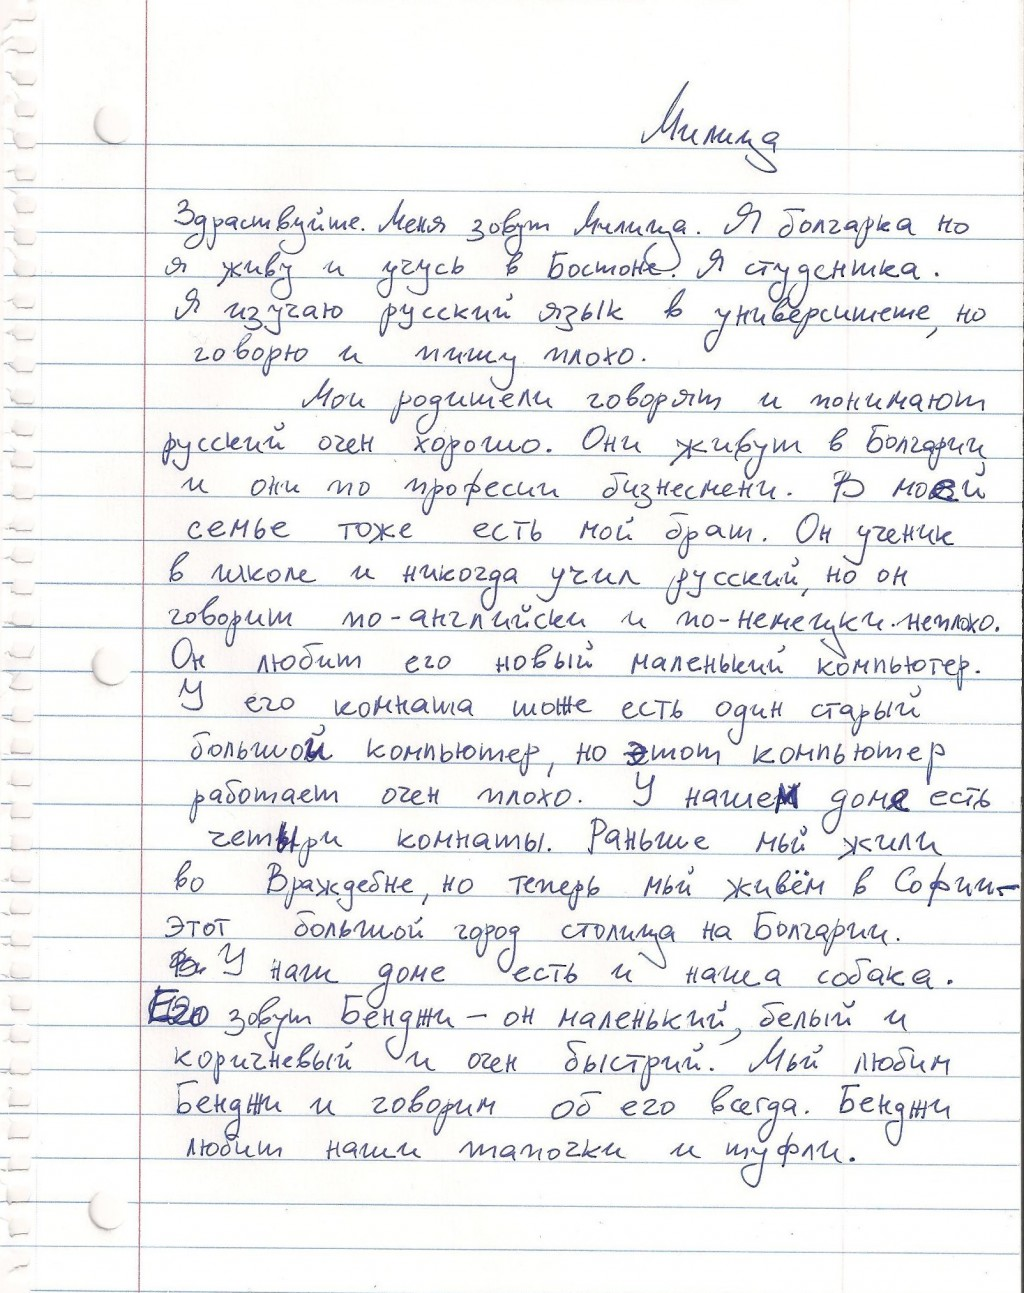 014 Help With My Essay Russian Surprising Me Introduction Sound Better Research Paper For Free Large